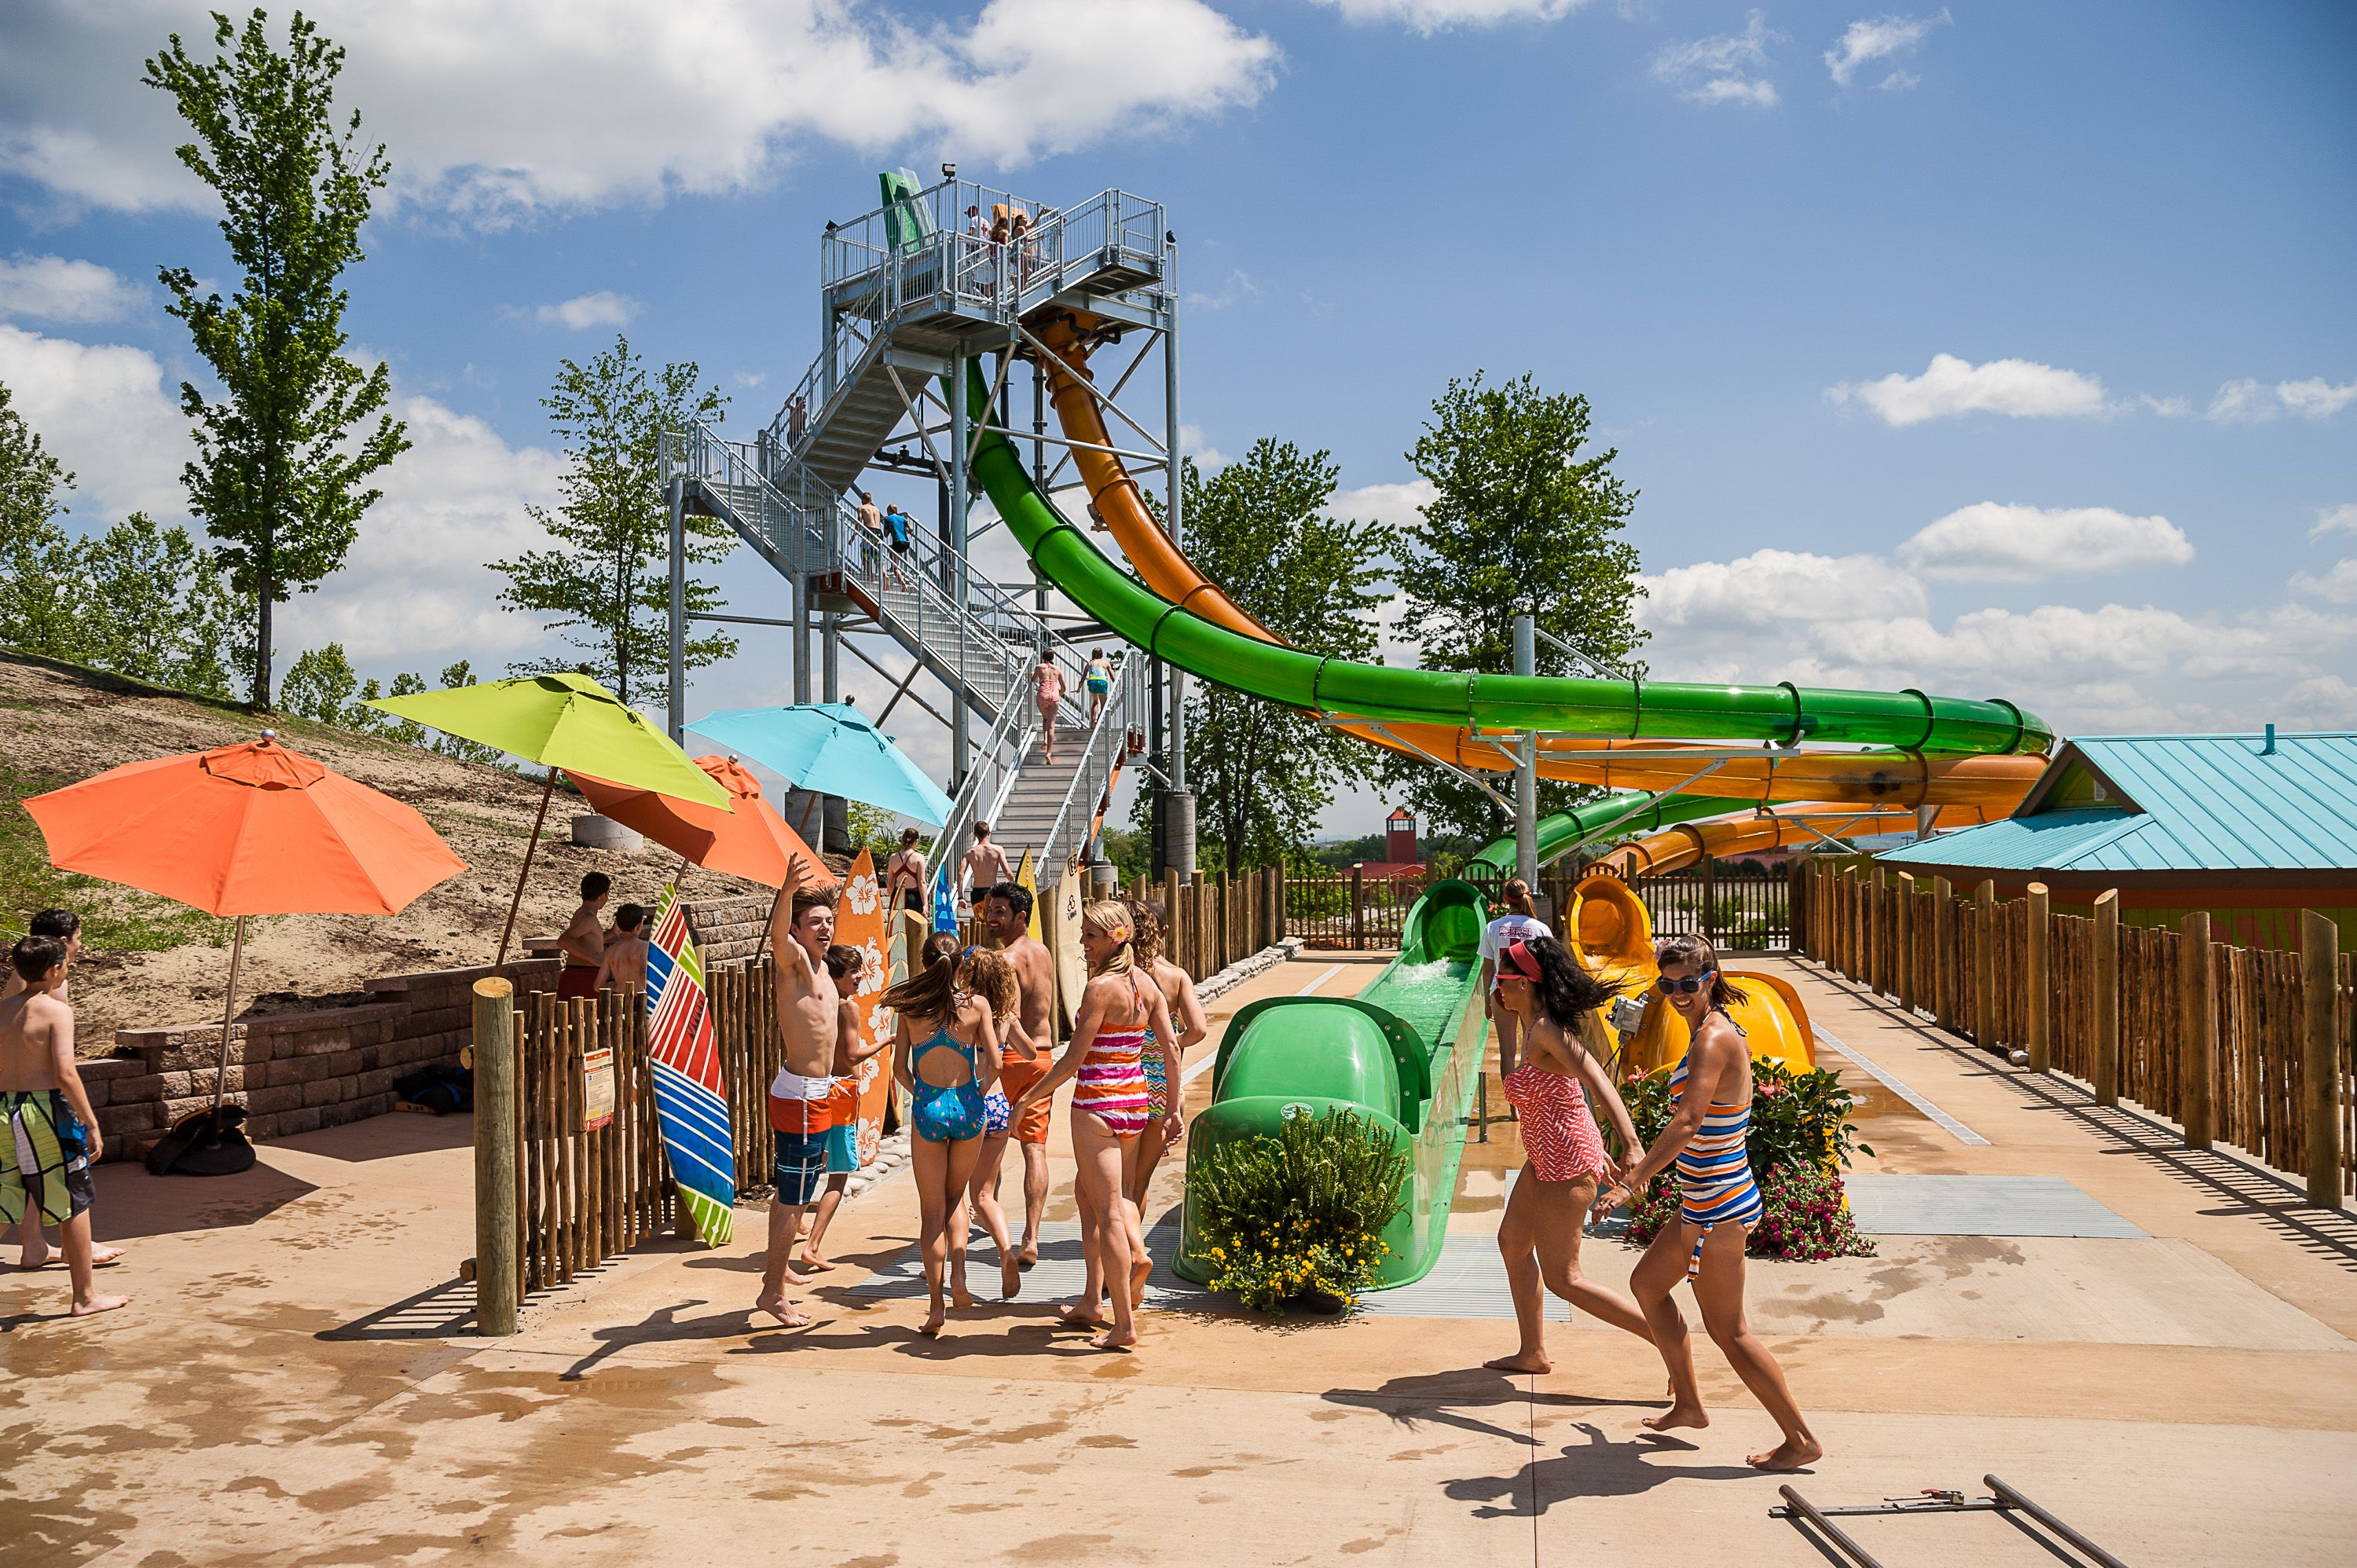 Newest Ride At Whitewater In Branson Kapau Plummet Whitewater Water Park Silver Dollar City